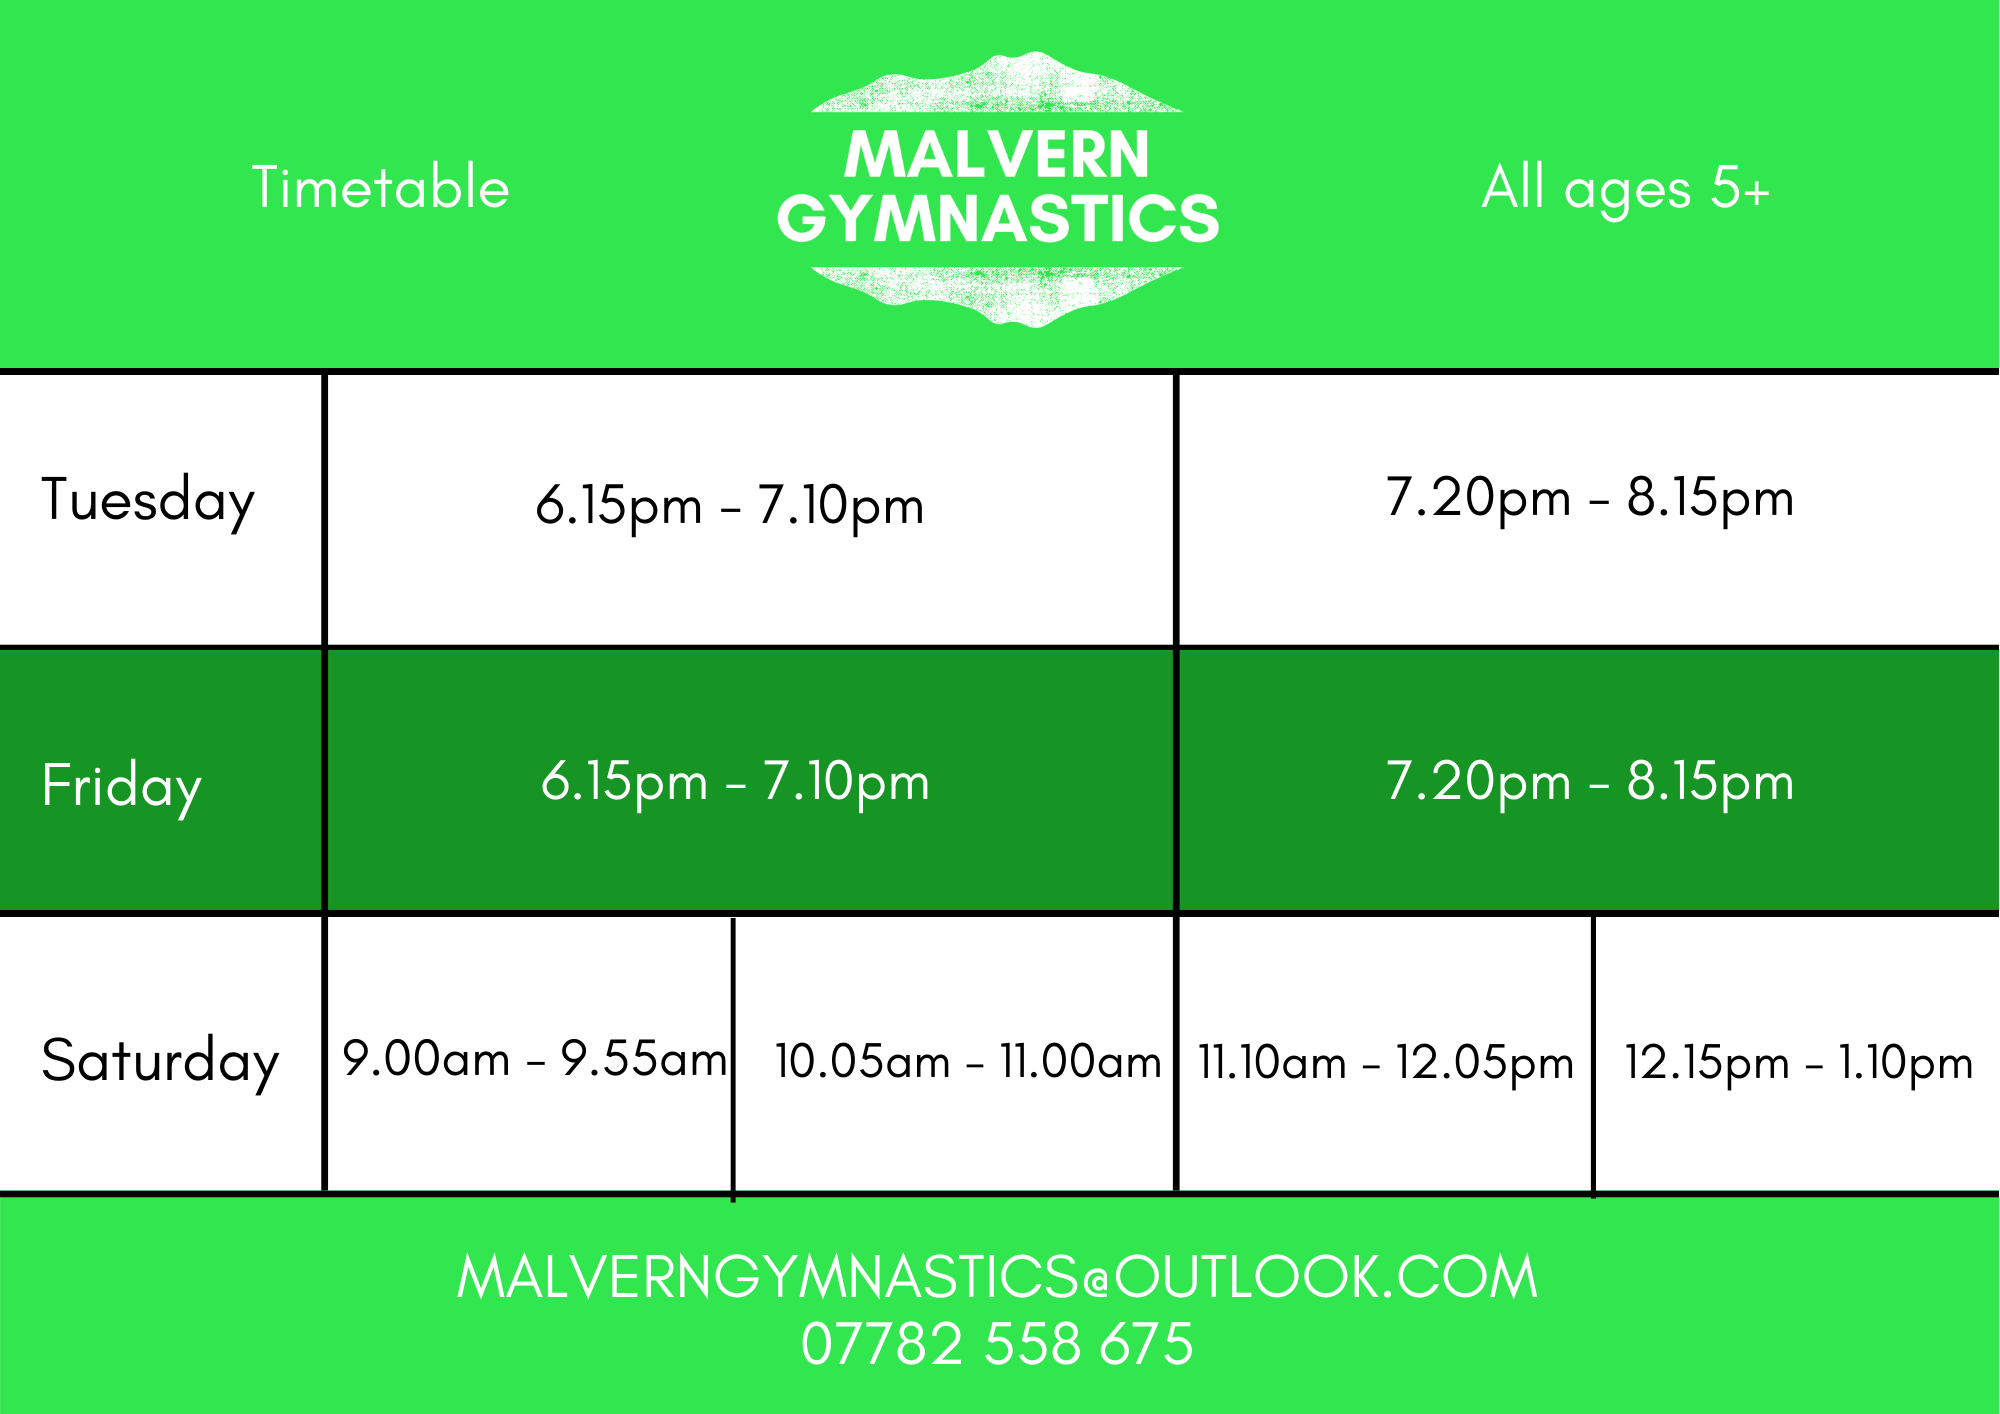 Malvern Gymnastics Timetable showing the Clubs Sessions at Malvern Active